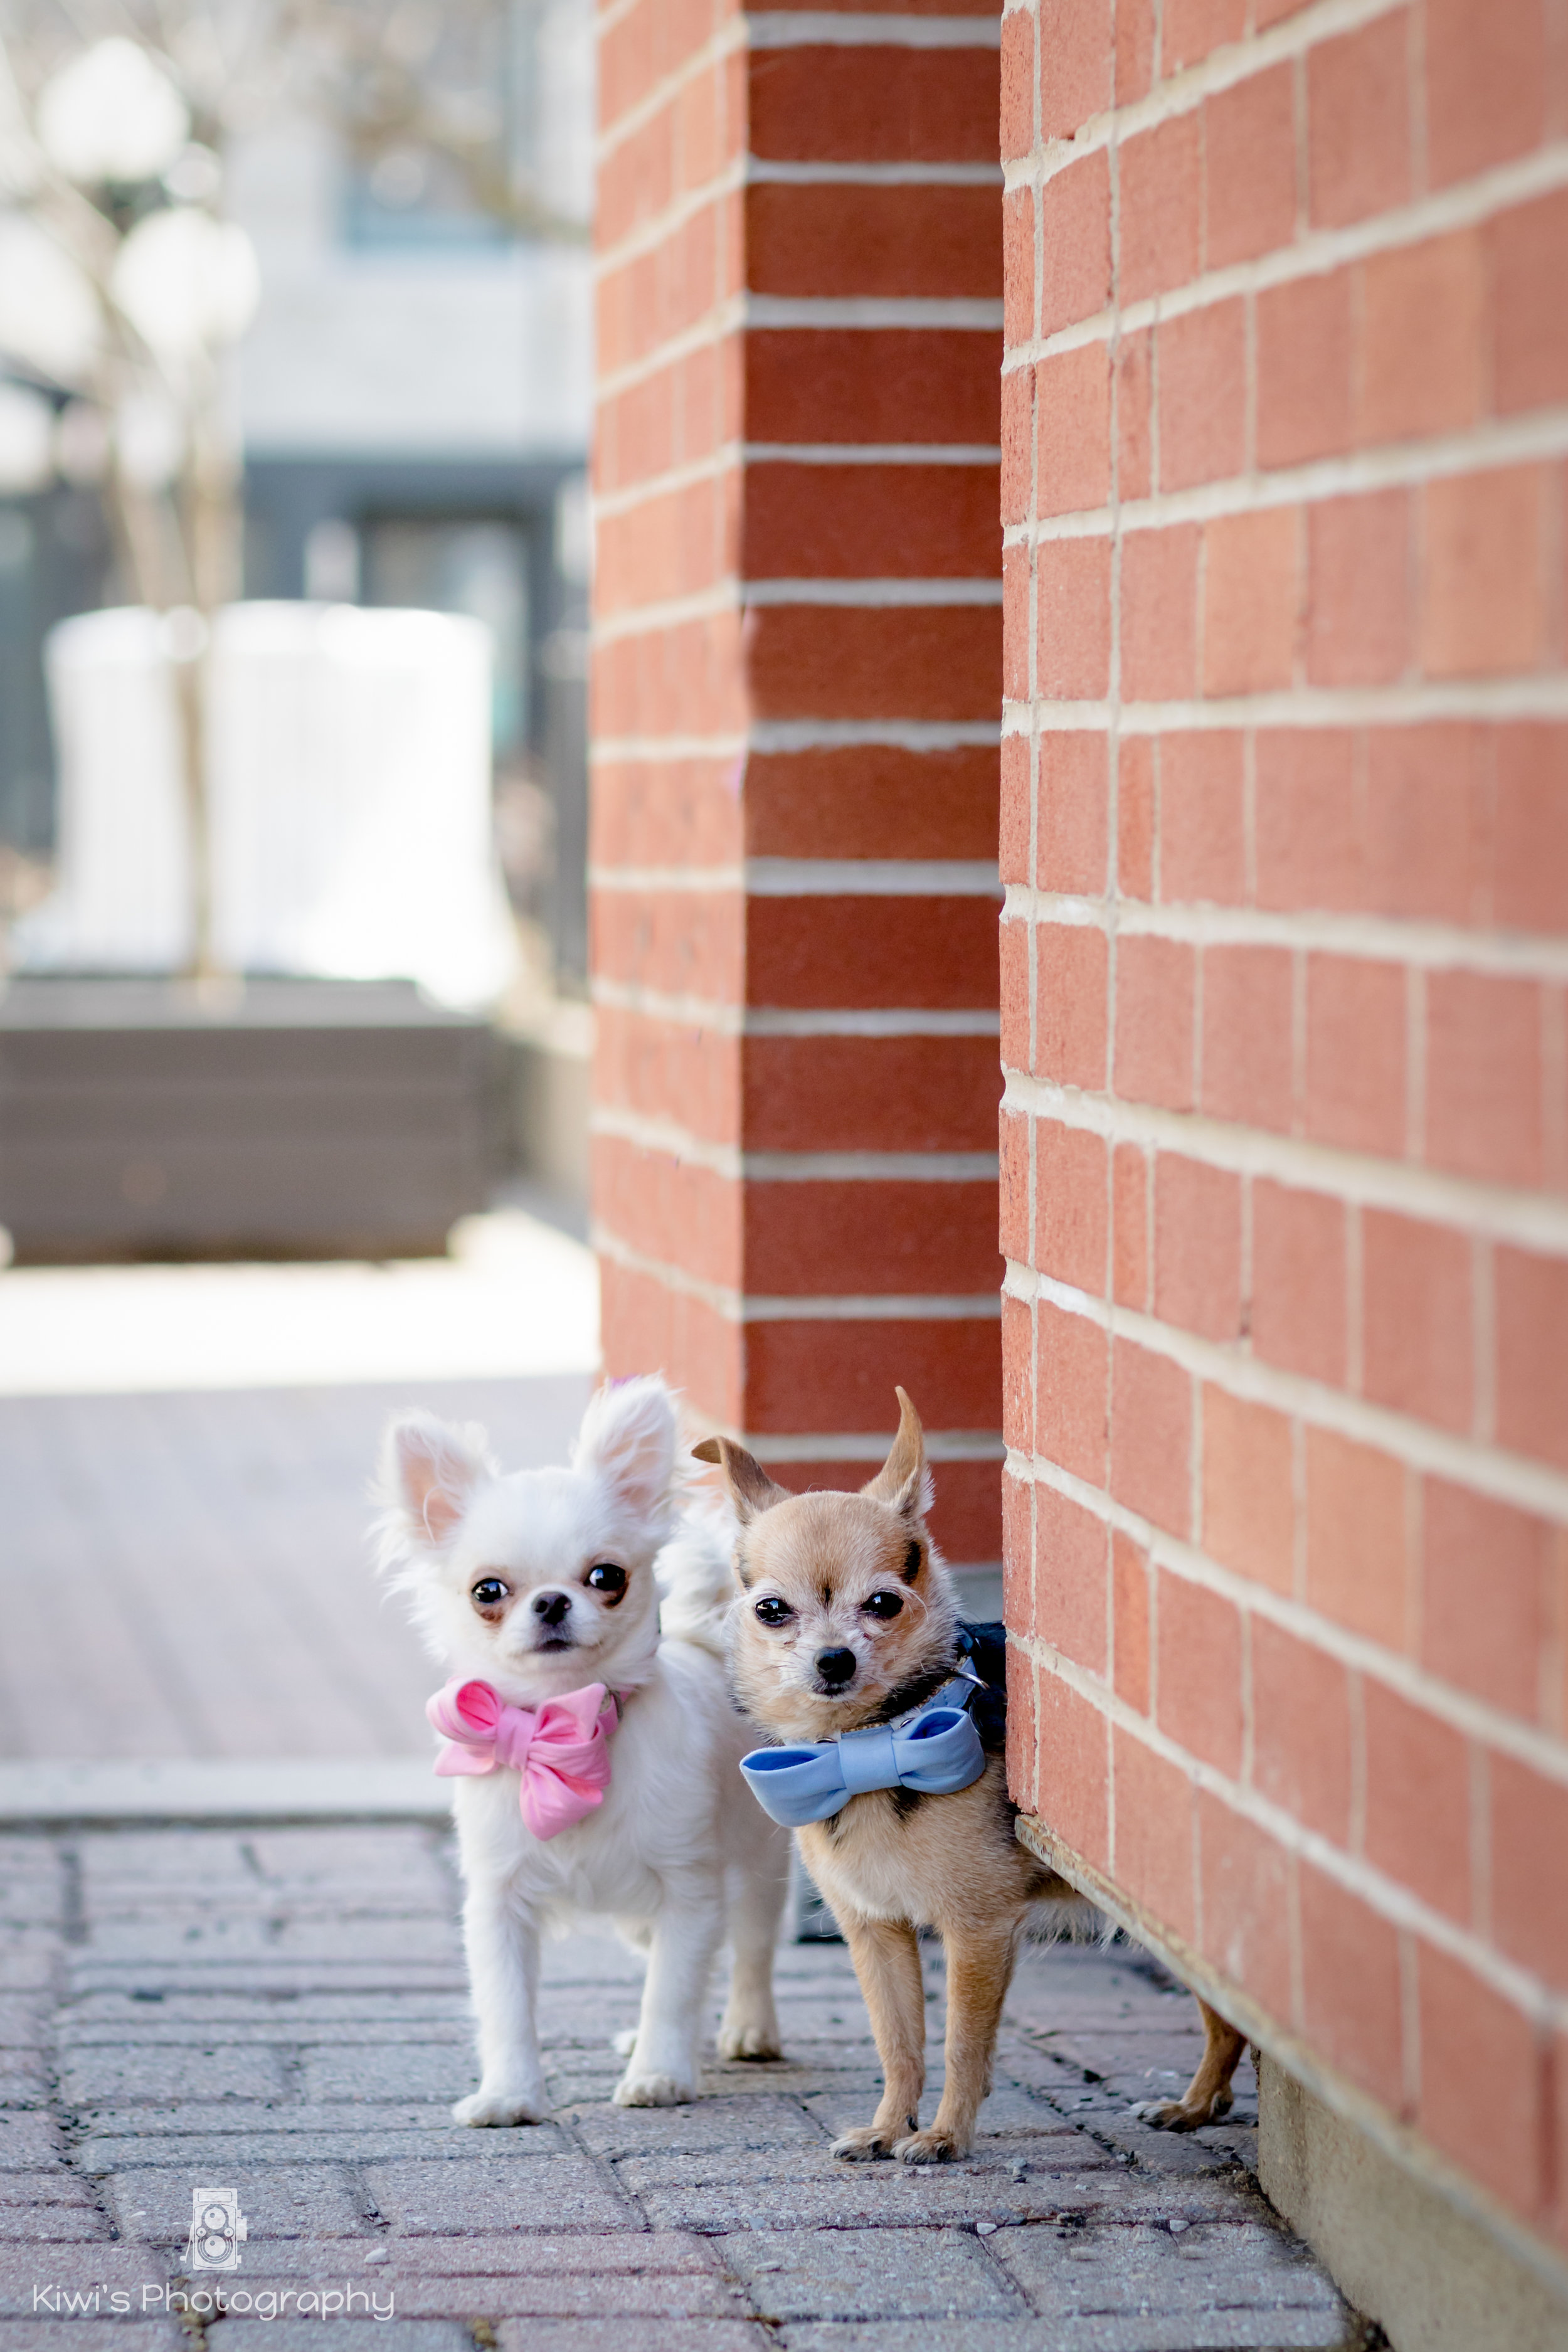 Chihuahuas in the Byward Market, Ottawa